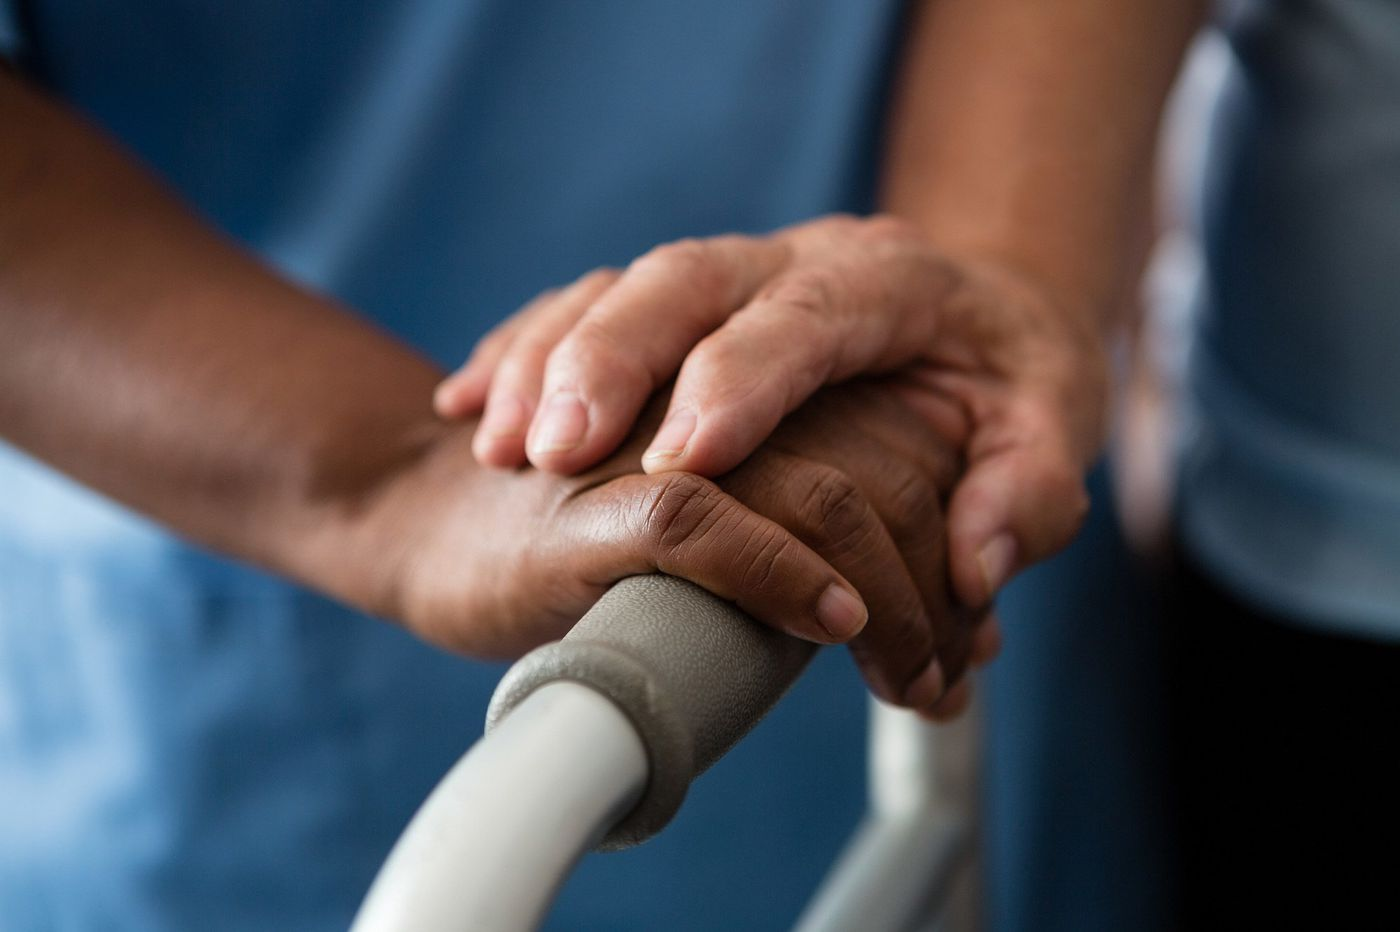 Nurses always have known the medical value of compassion l